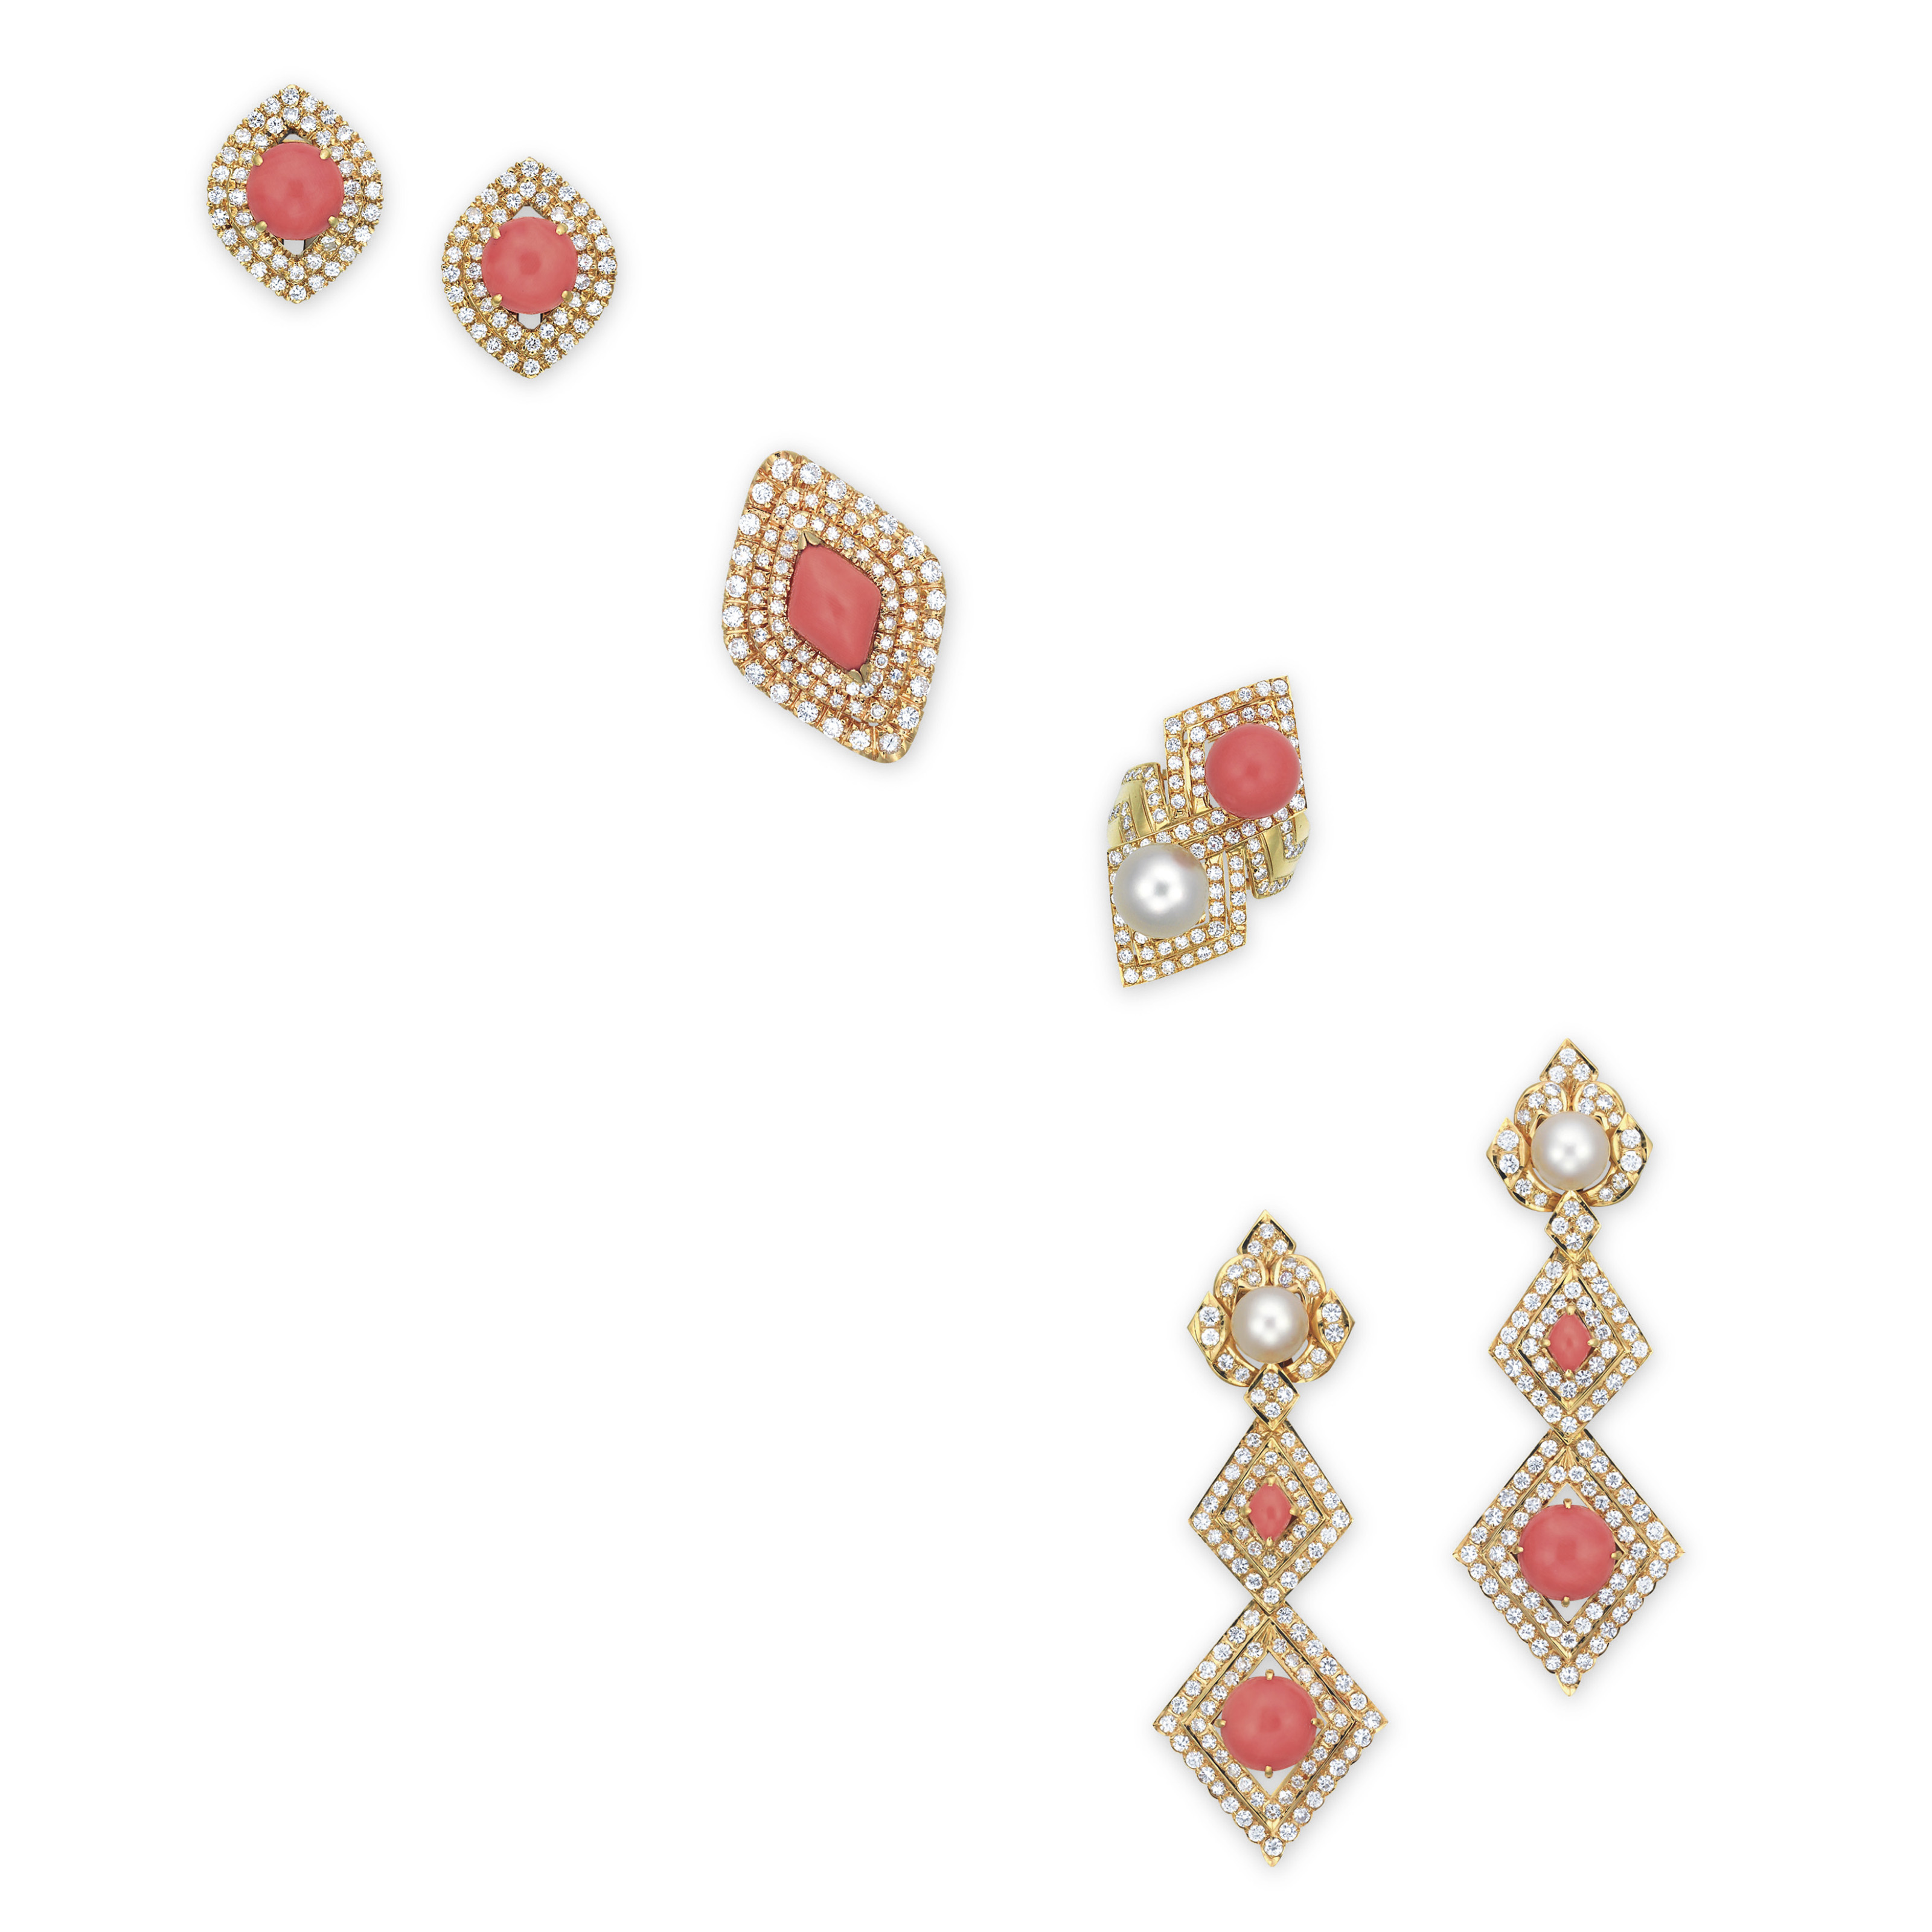 A SET OF CORAL, CULTURED PEARL